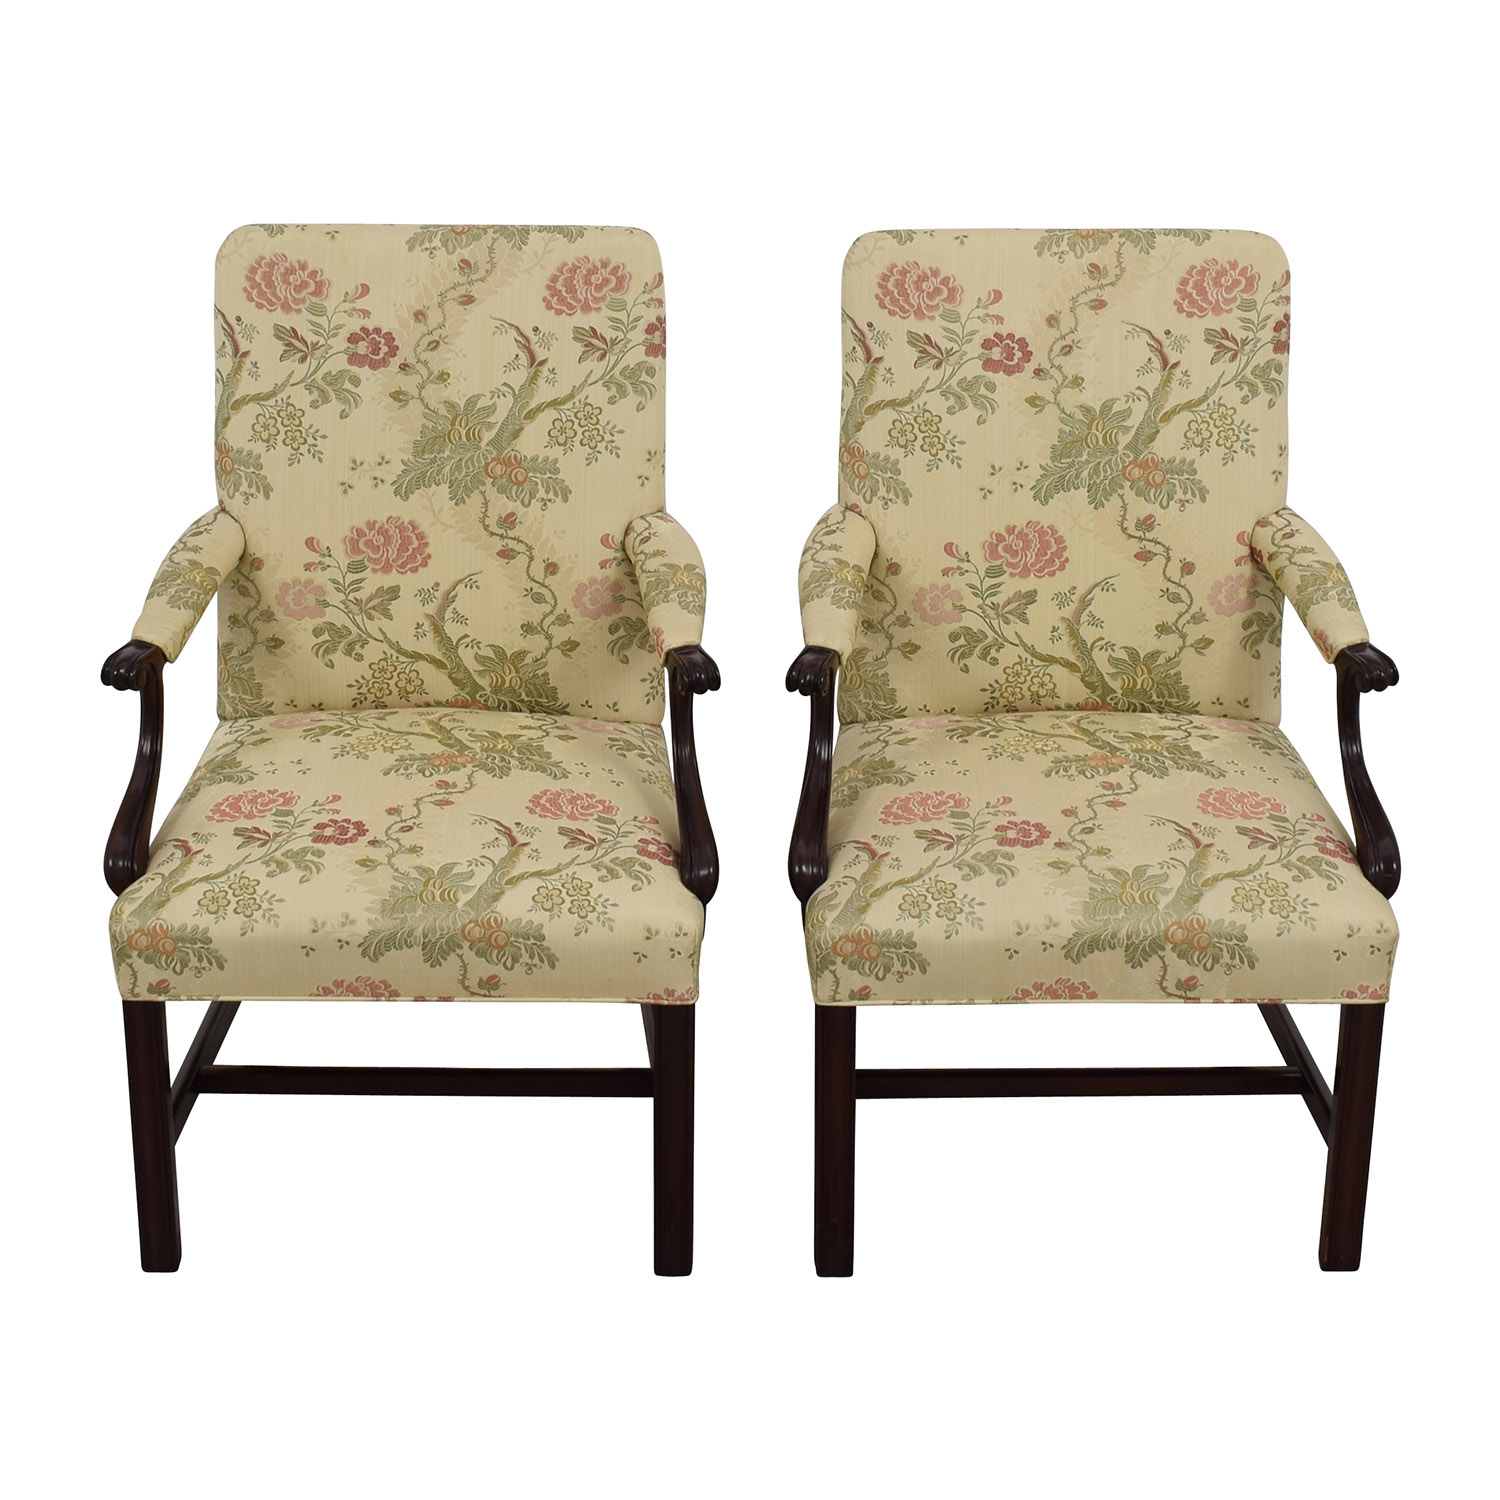 Upholstered Accent Chairs With Arms 90 Off Traditional Upholstered Arm Chair Set Of Two